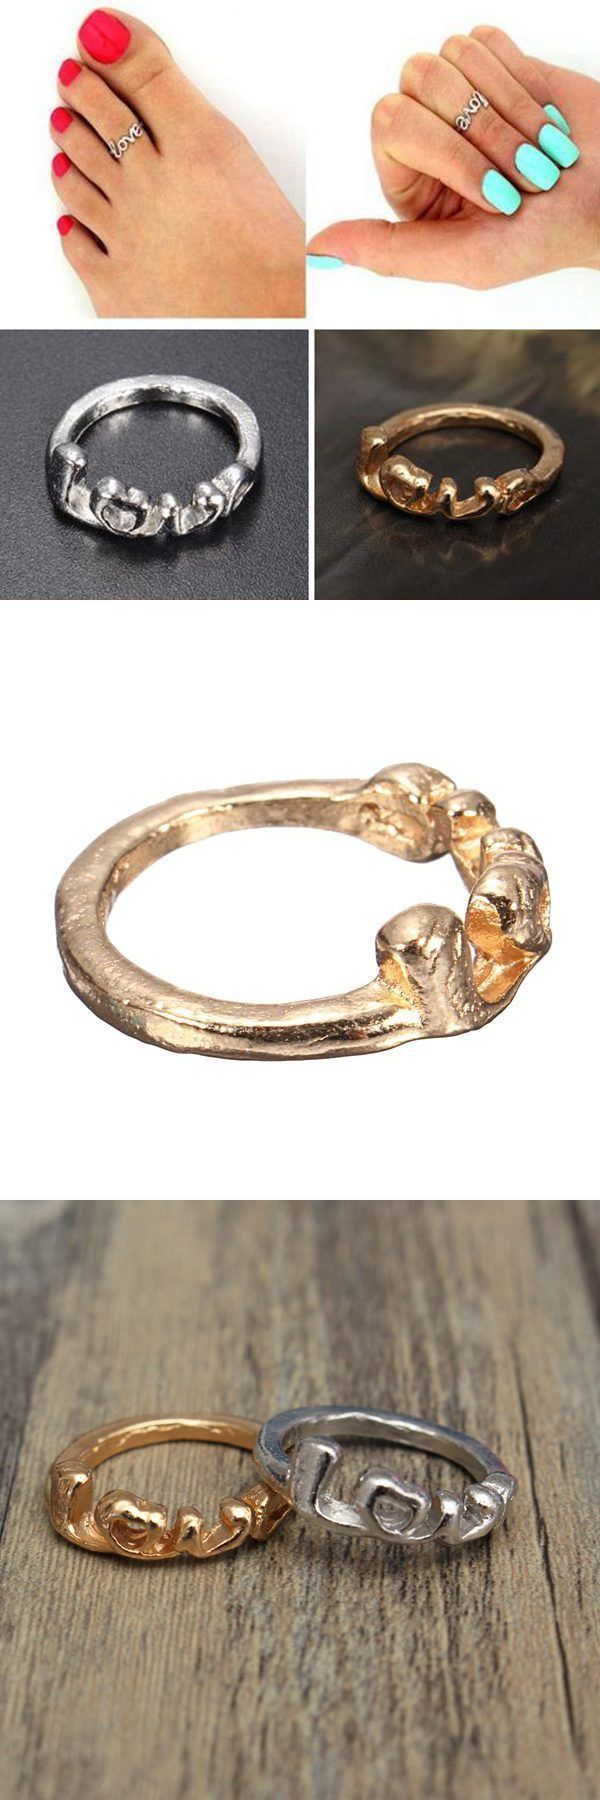 Cute gold silver love letter toe ring for women foot beach jewelry body jewelry joplin mo #body #jewelry #atlanta #body #jewelry #etsy #body #jewelry #online #best #body #jewelry #source #coupons #2014